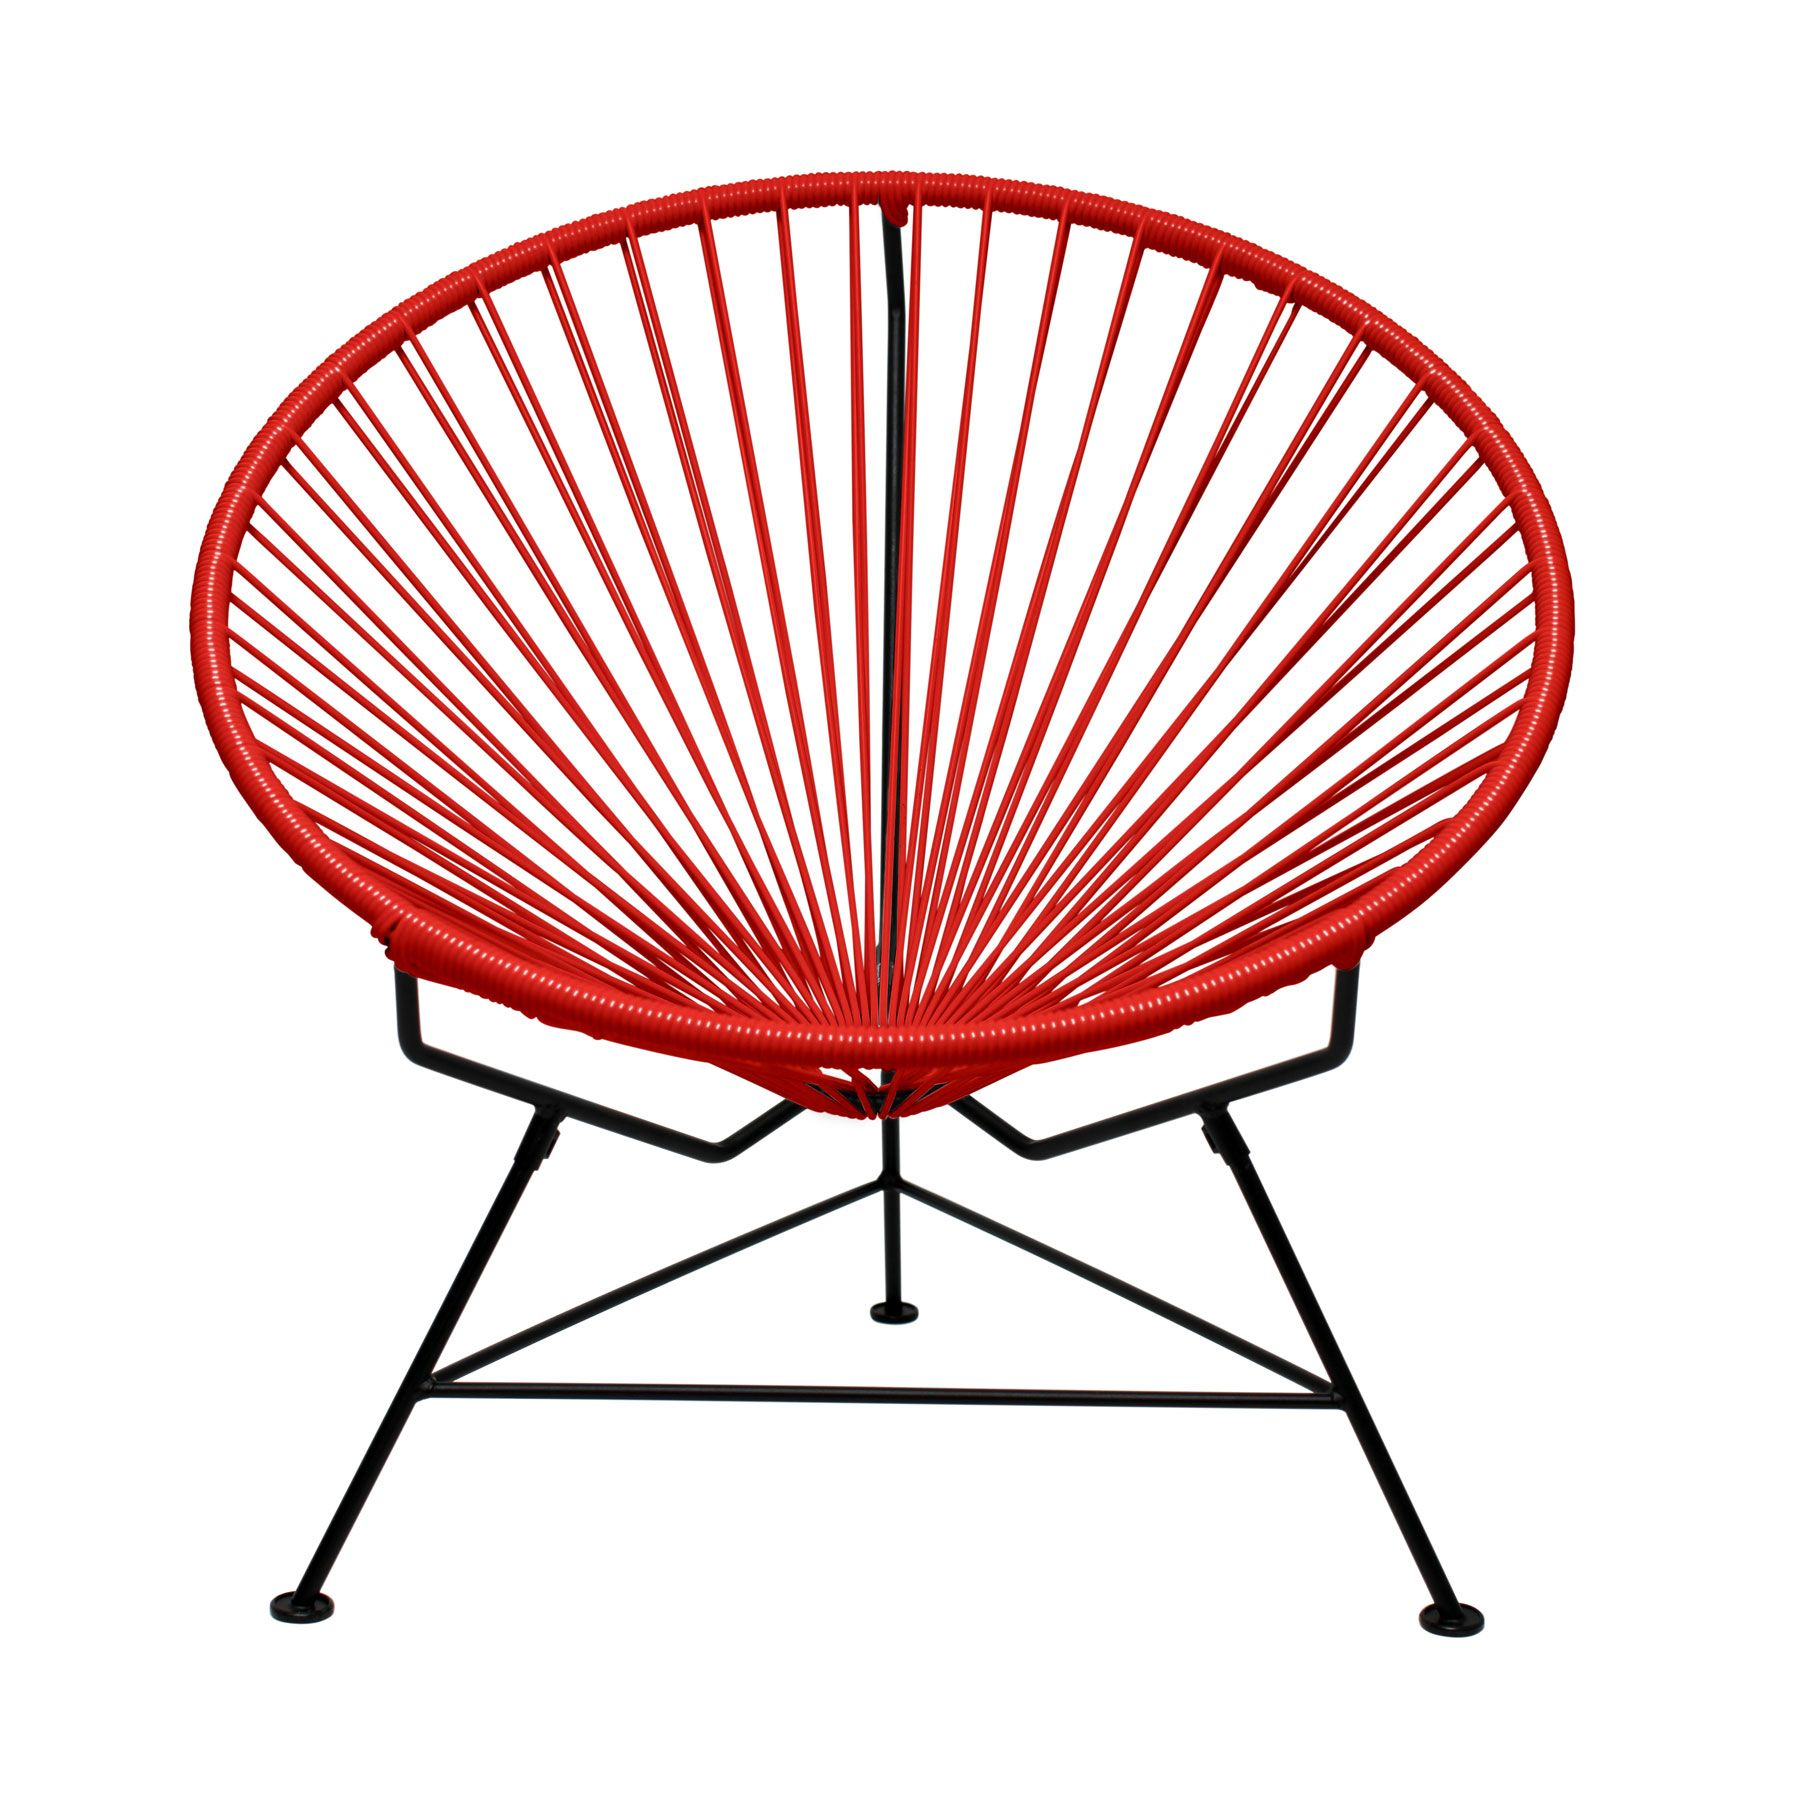 Acapulco chair cb2 - Explore Mexican Chairs Mid Century Design And More